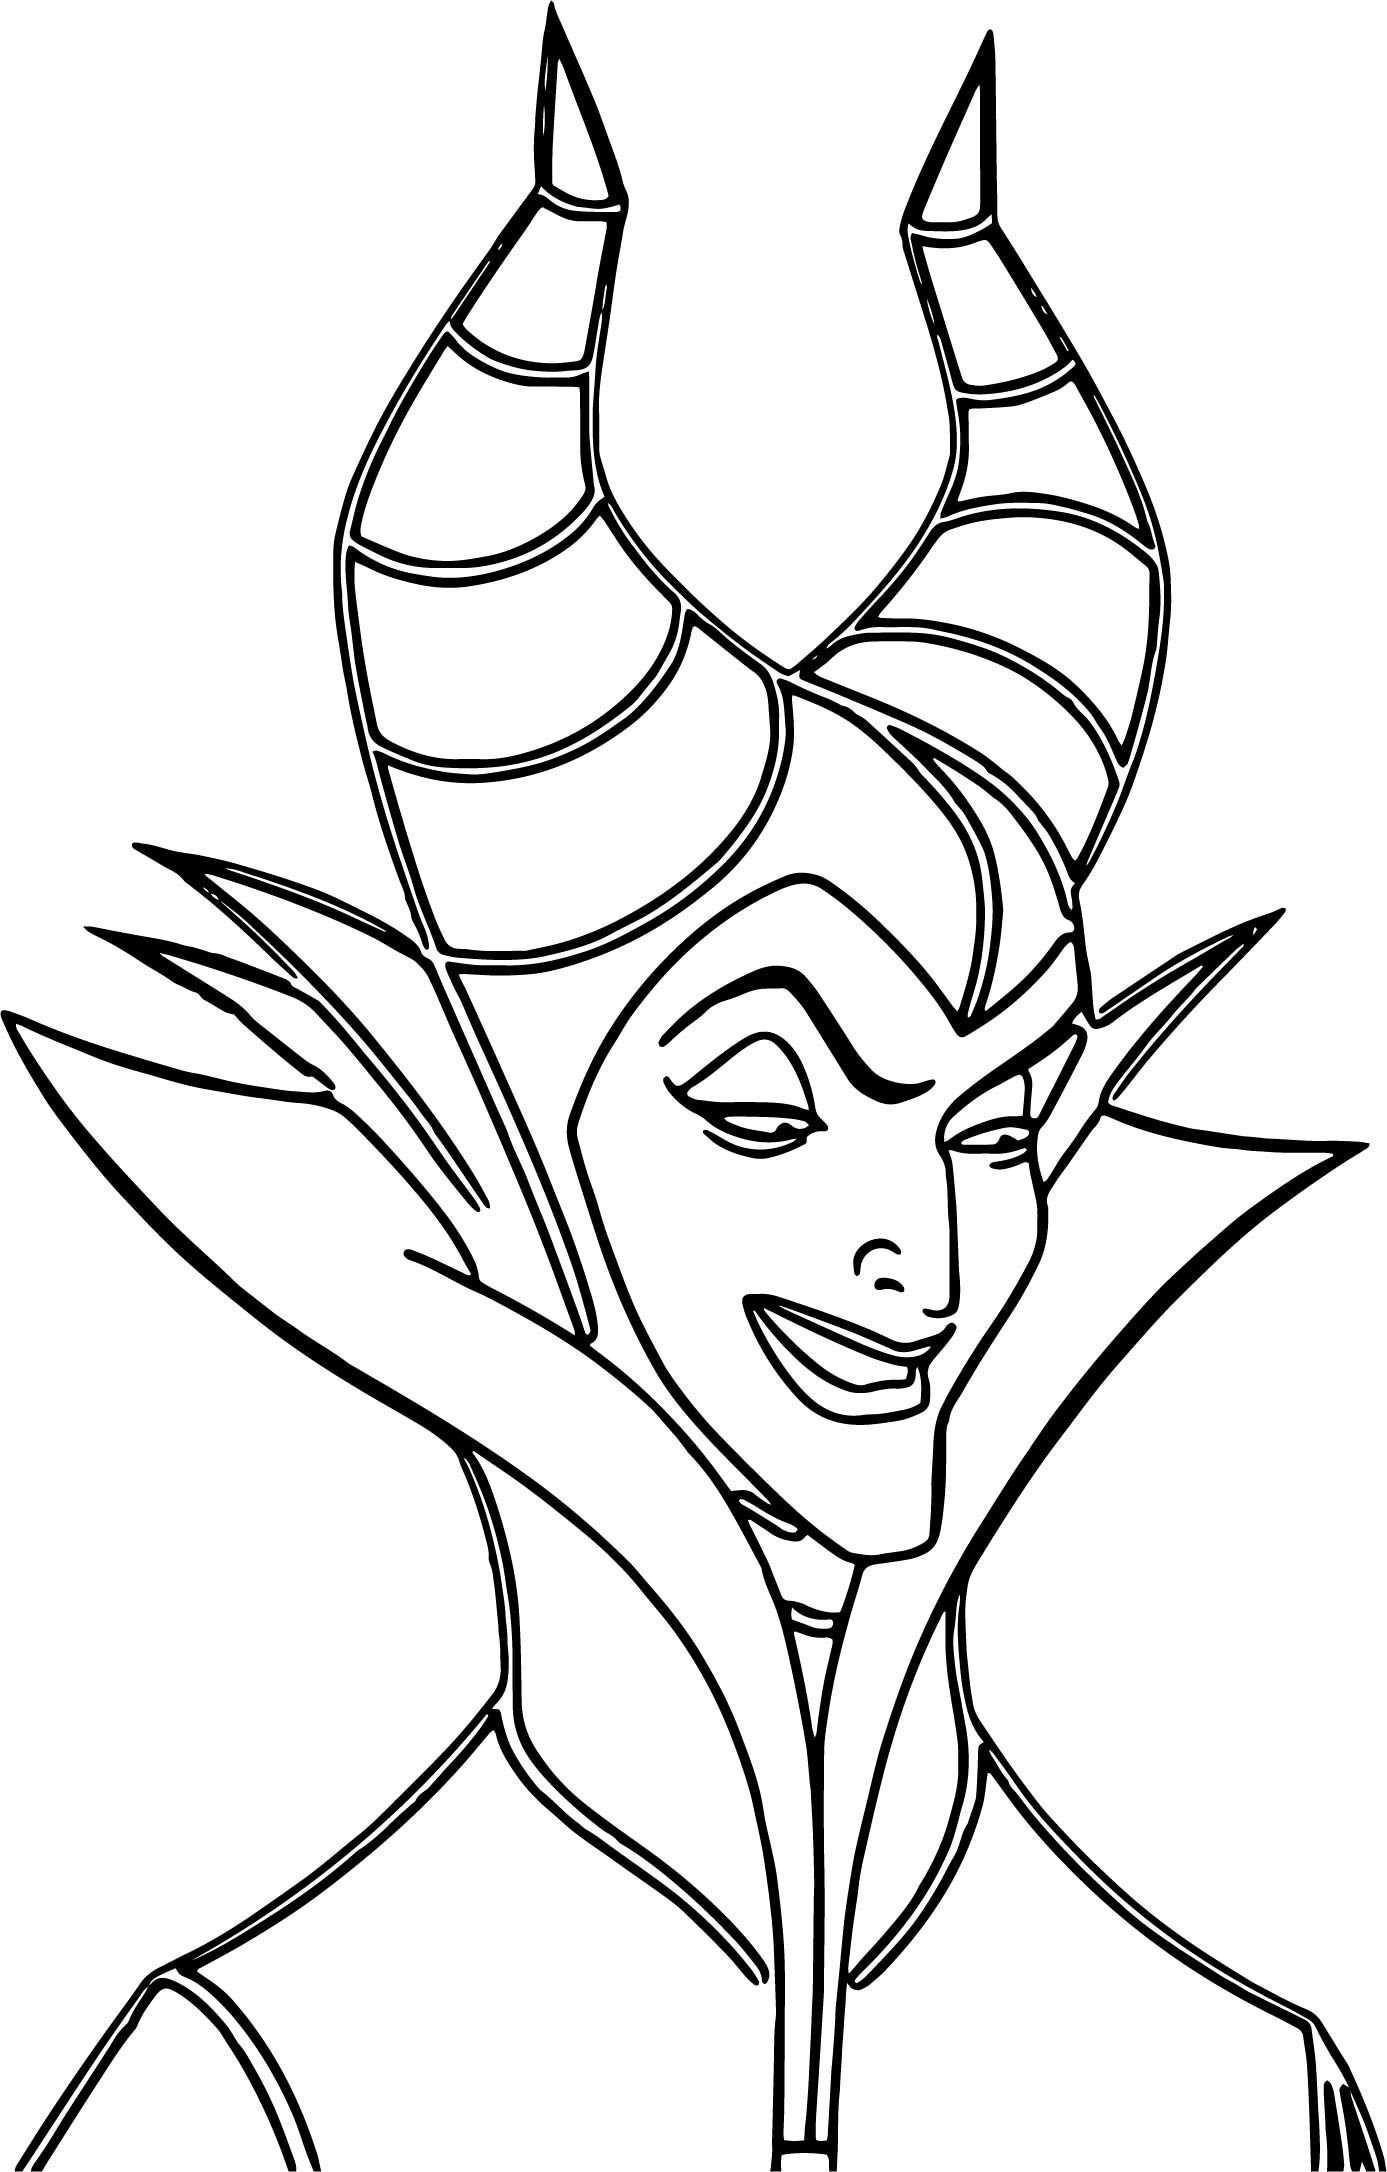 Awesome Maleficent Evil Cartoon Coloring Page Cartoon Coloring Pages Maleficent Coloring Pages